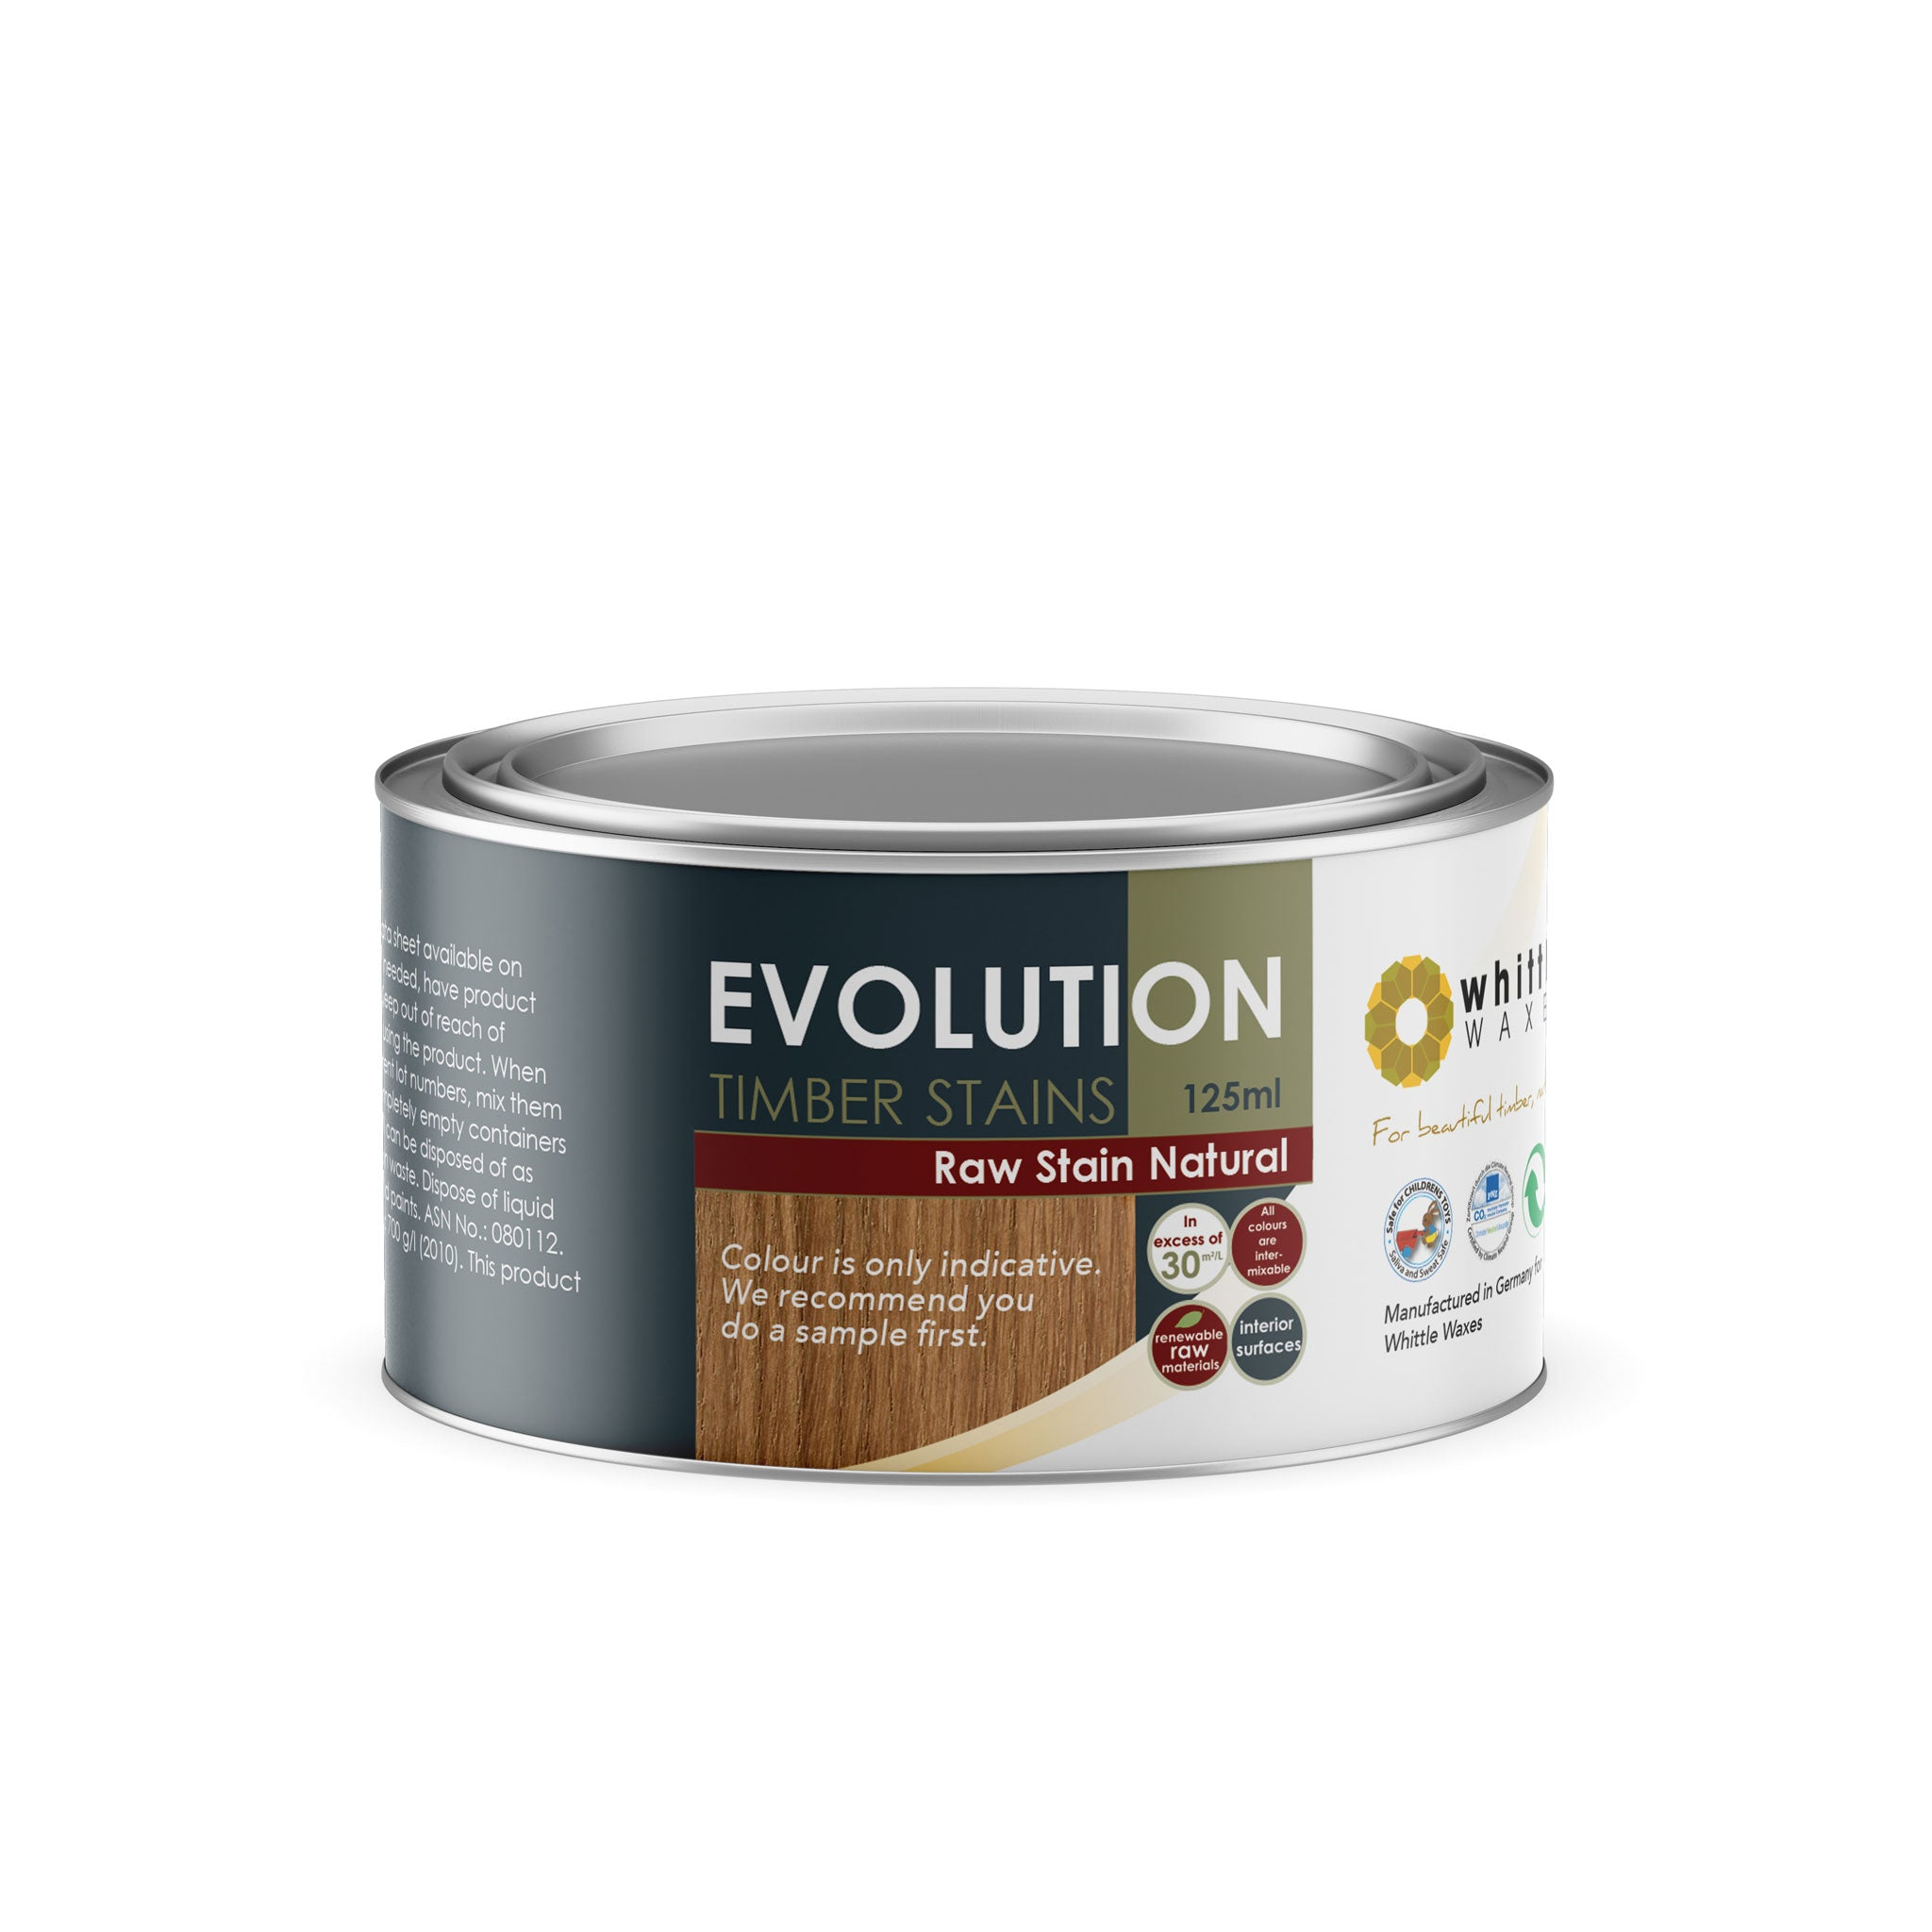 Whittle Waxes Evolution Raw Stain Natural - quality timber stain - 125ml